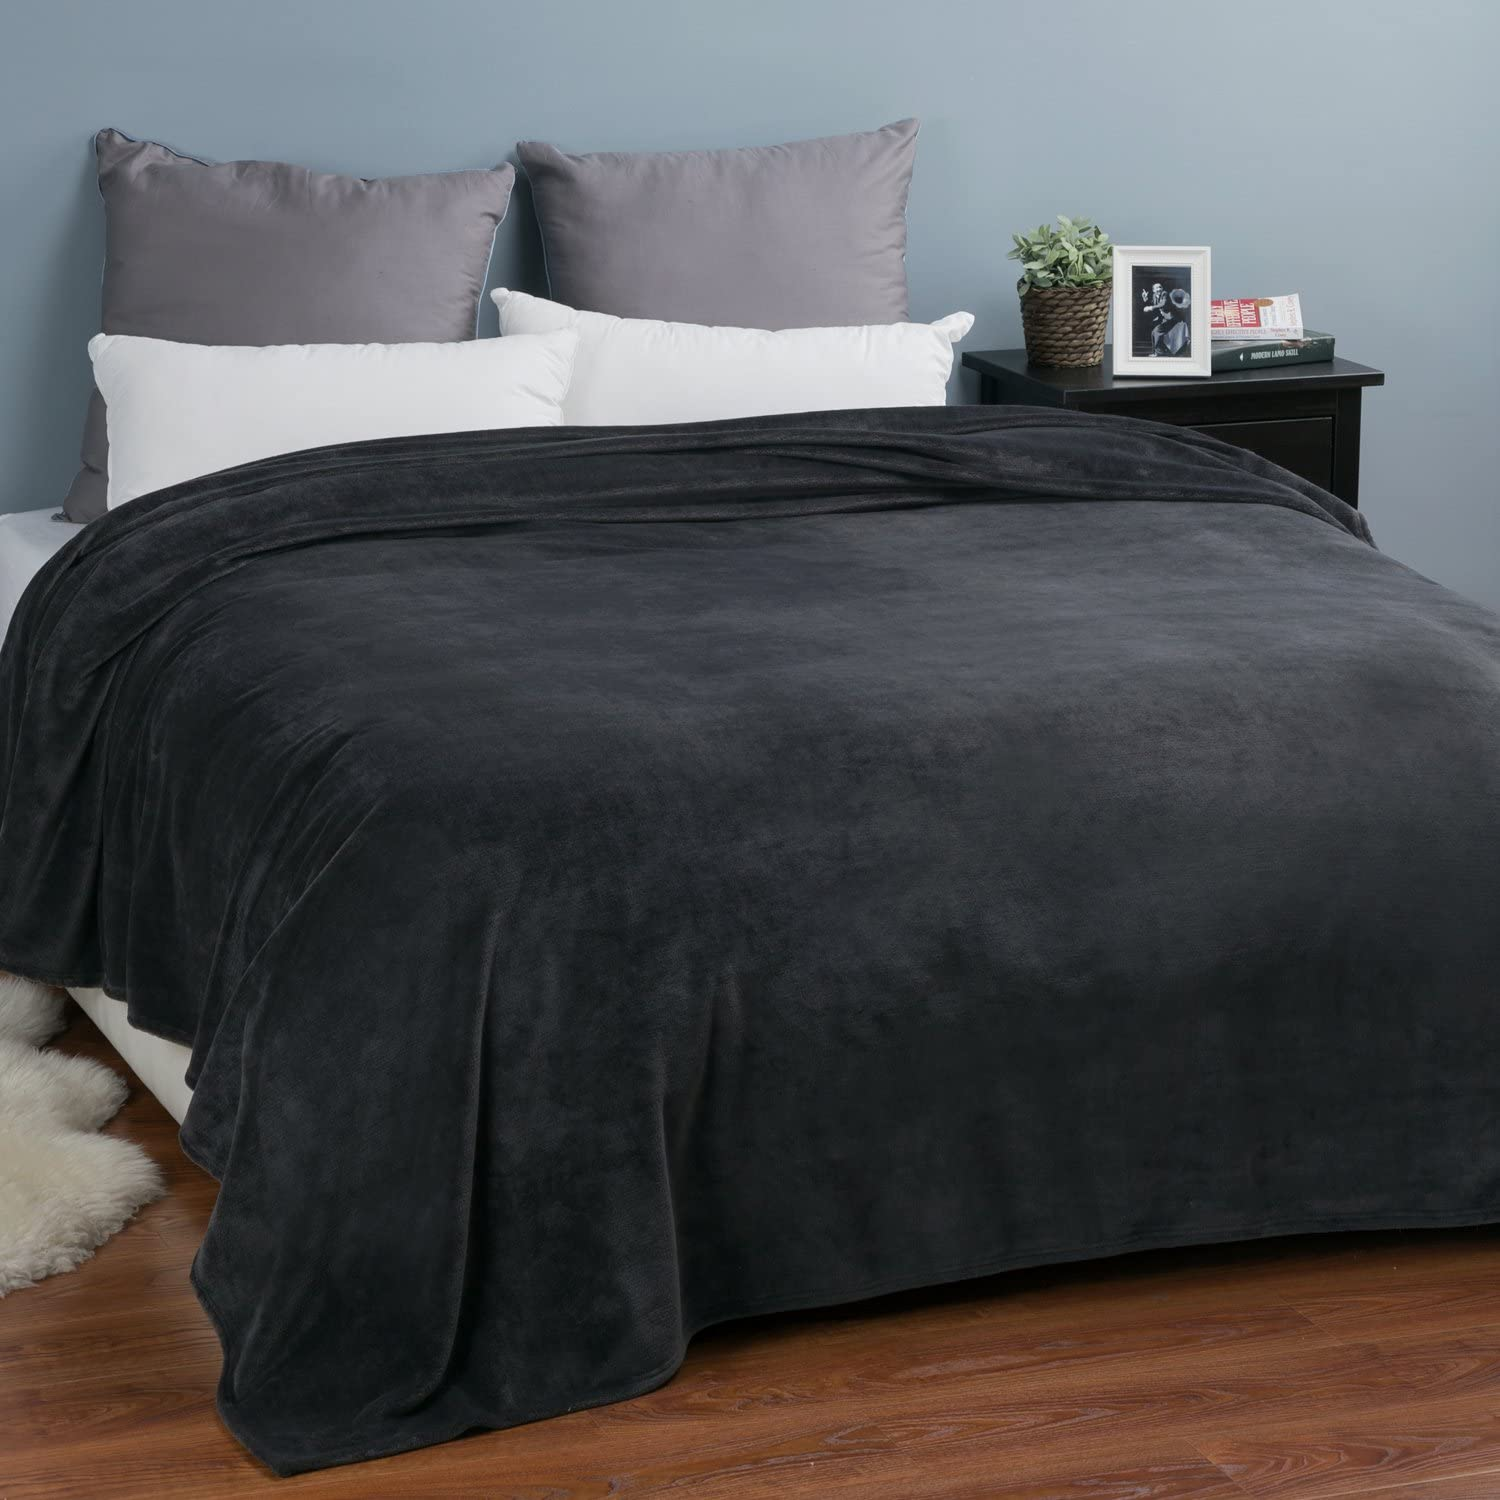 FLUFFY LUSCIOUS TEDDY BEAR FUR SHERPA BLACK 100/%POLYESTER SUPER KING DUVET COVER